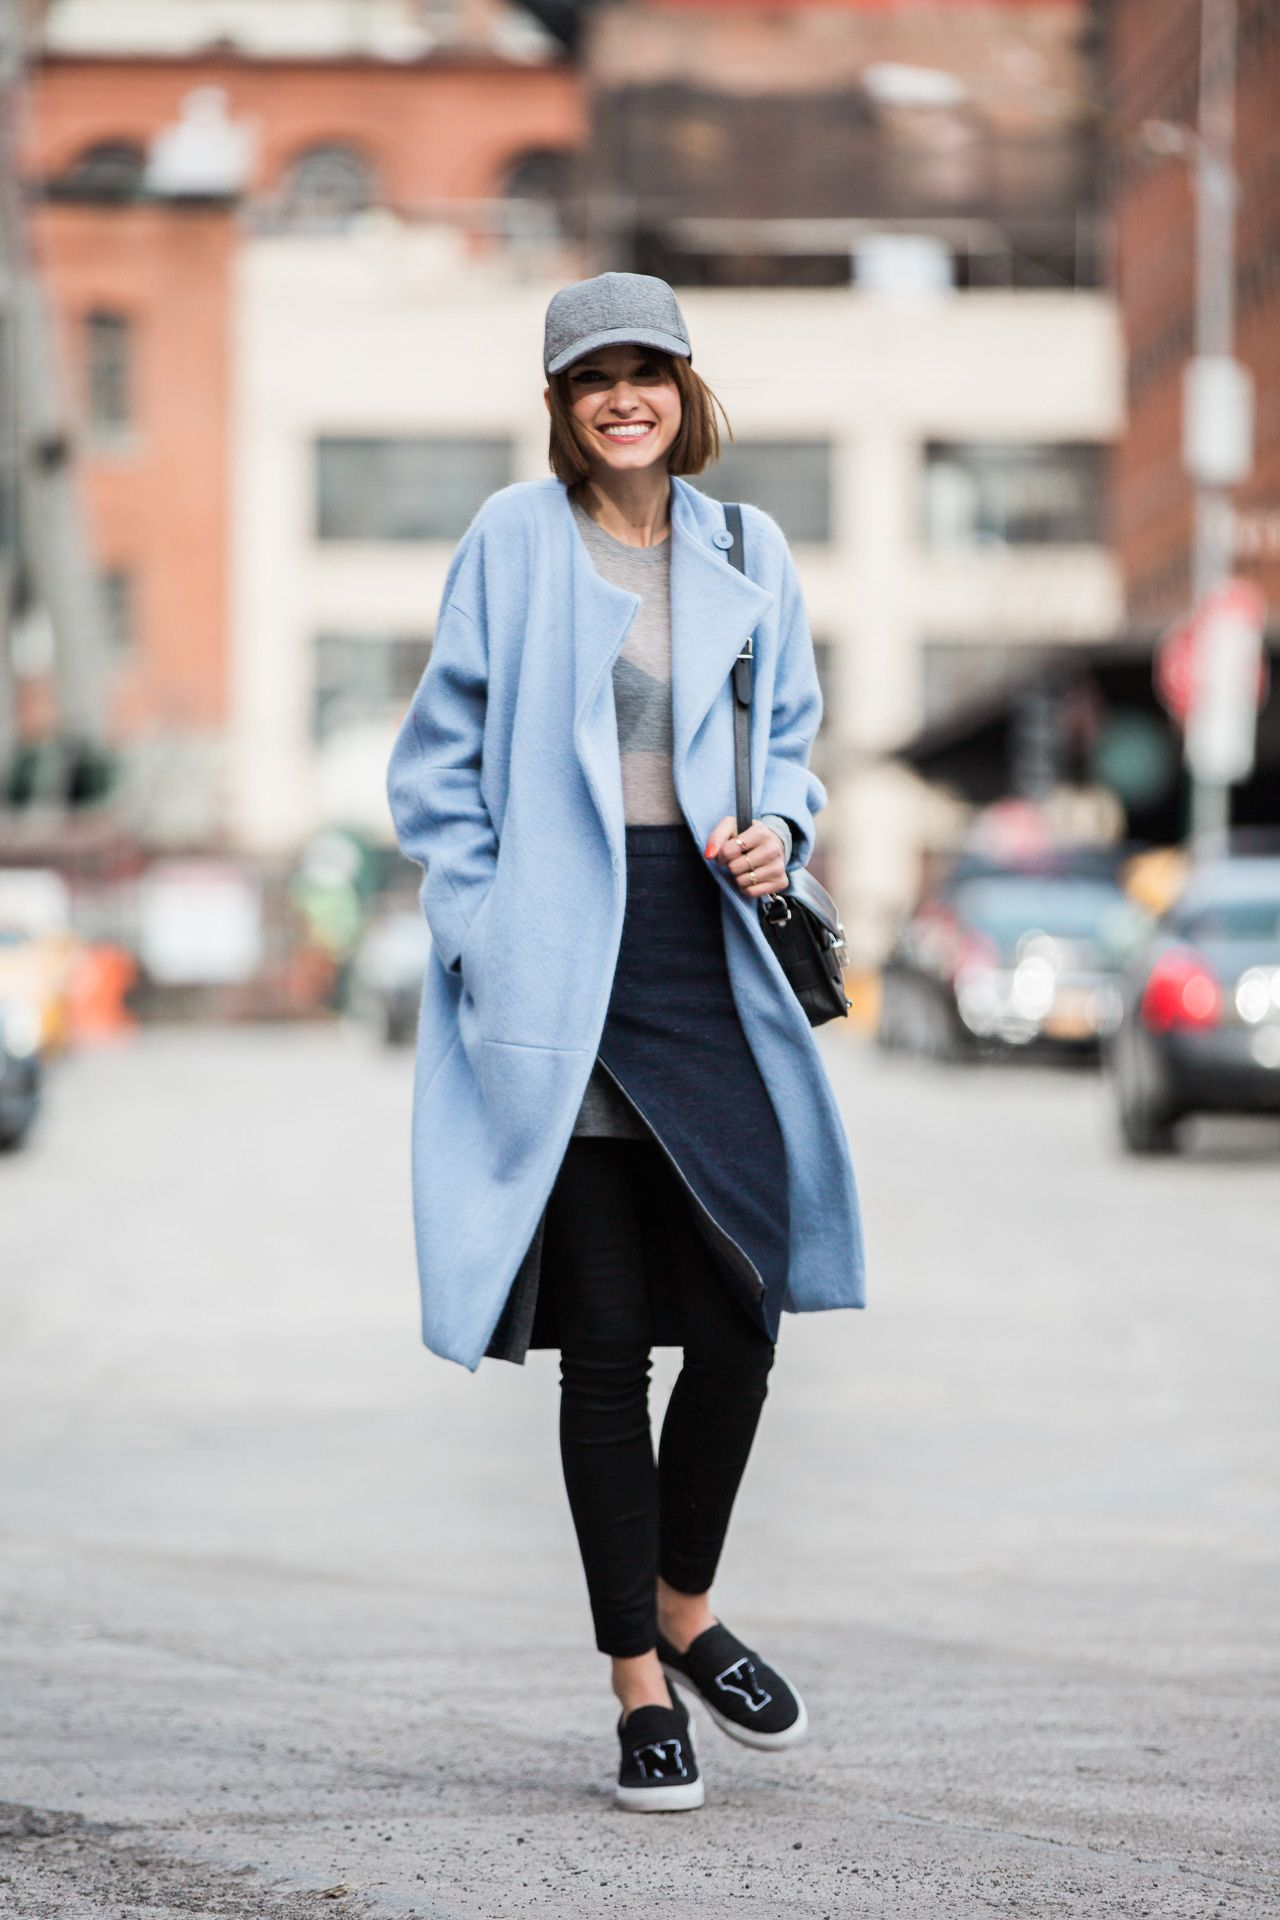 more styles on I Love Street Style